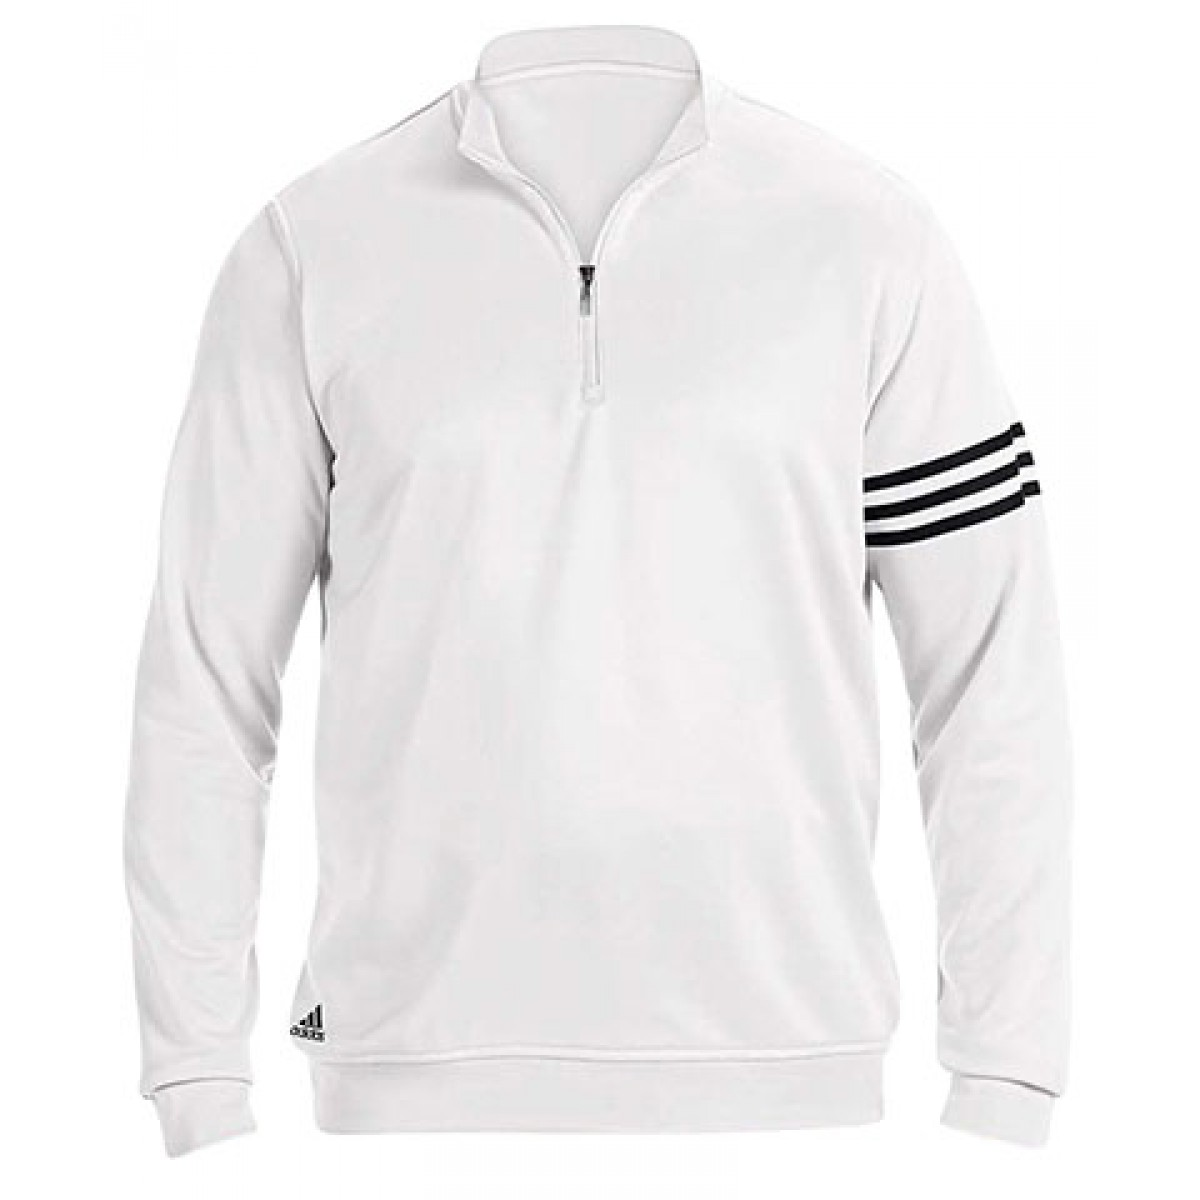 Adidas Men's 3-Stripes Pullover-White-XL